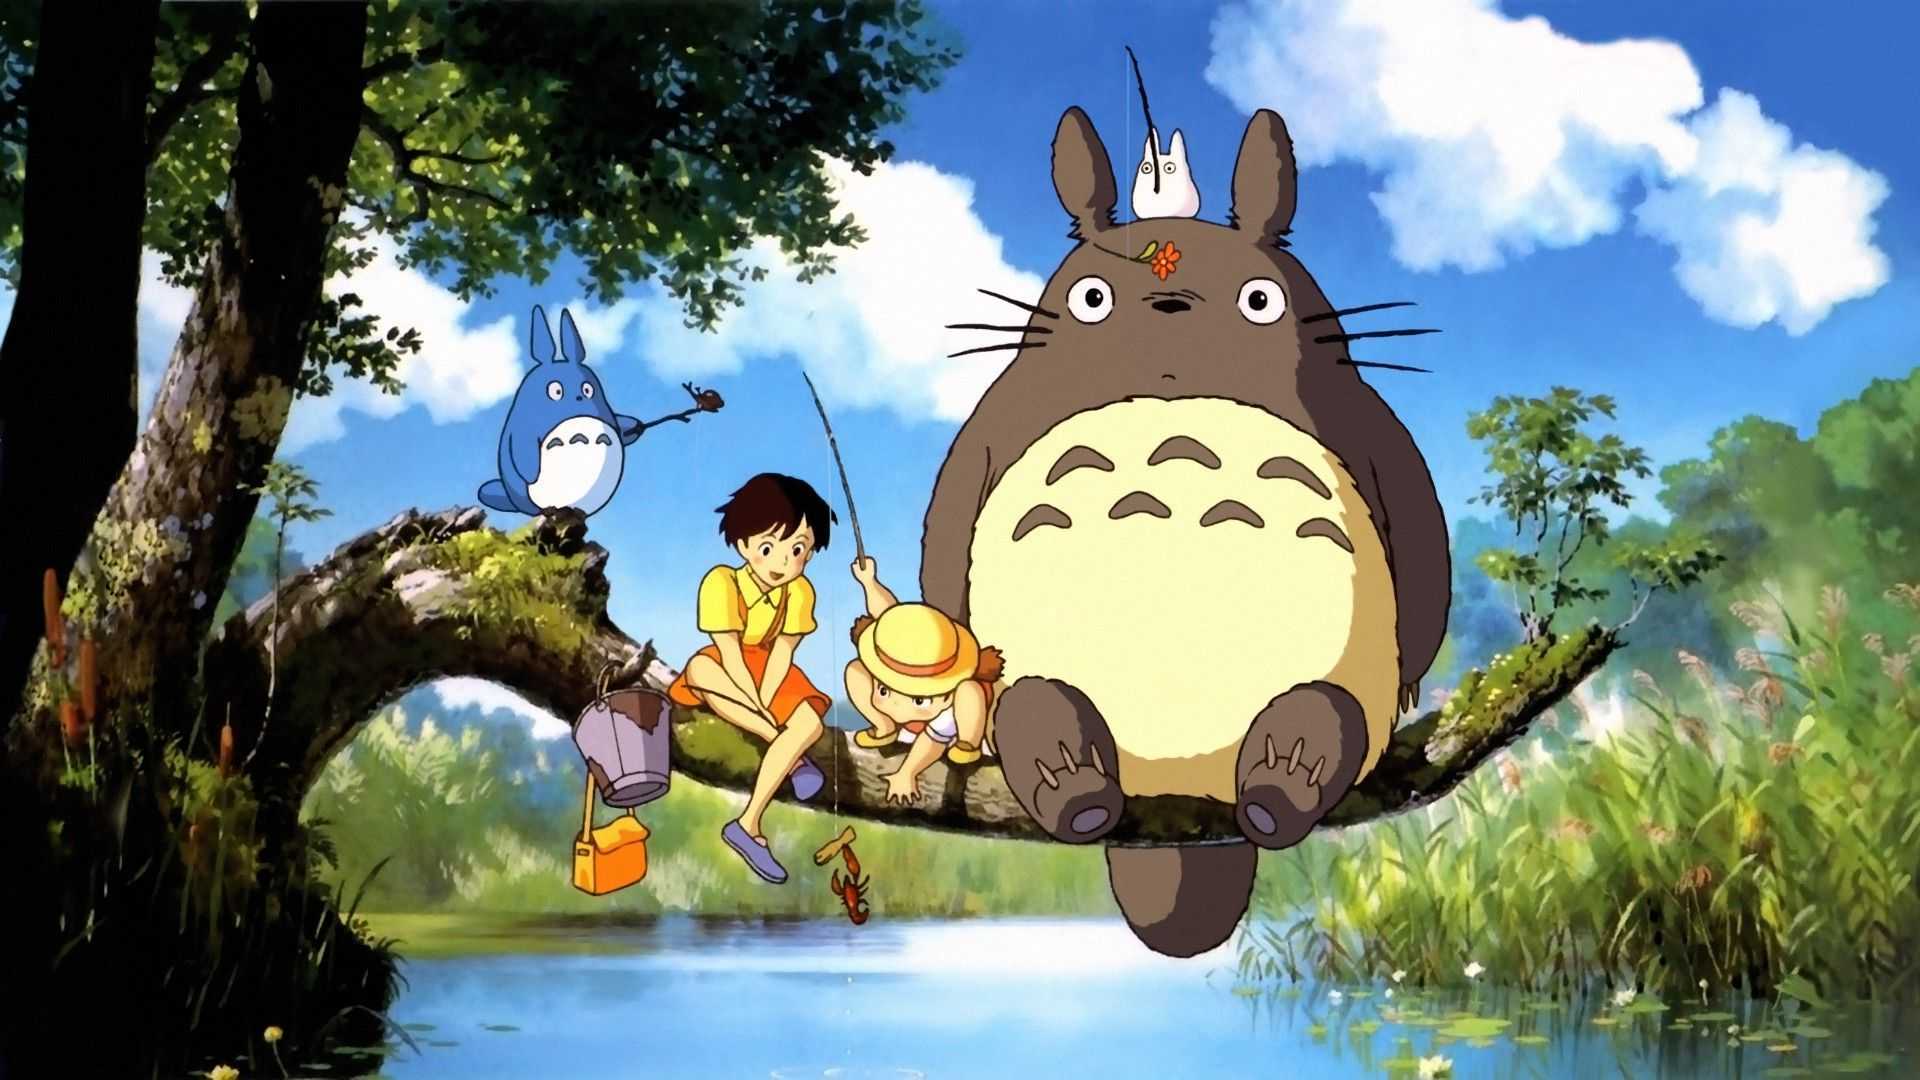 Studio Ghibli's 'My Neighbor Totoro' will be shown April 9 at the North Park Theatre.